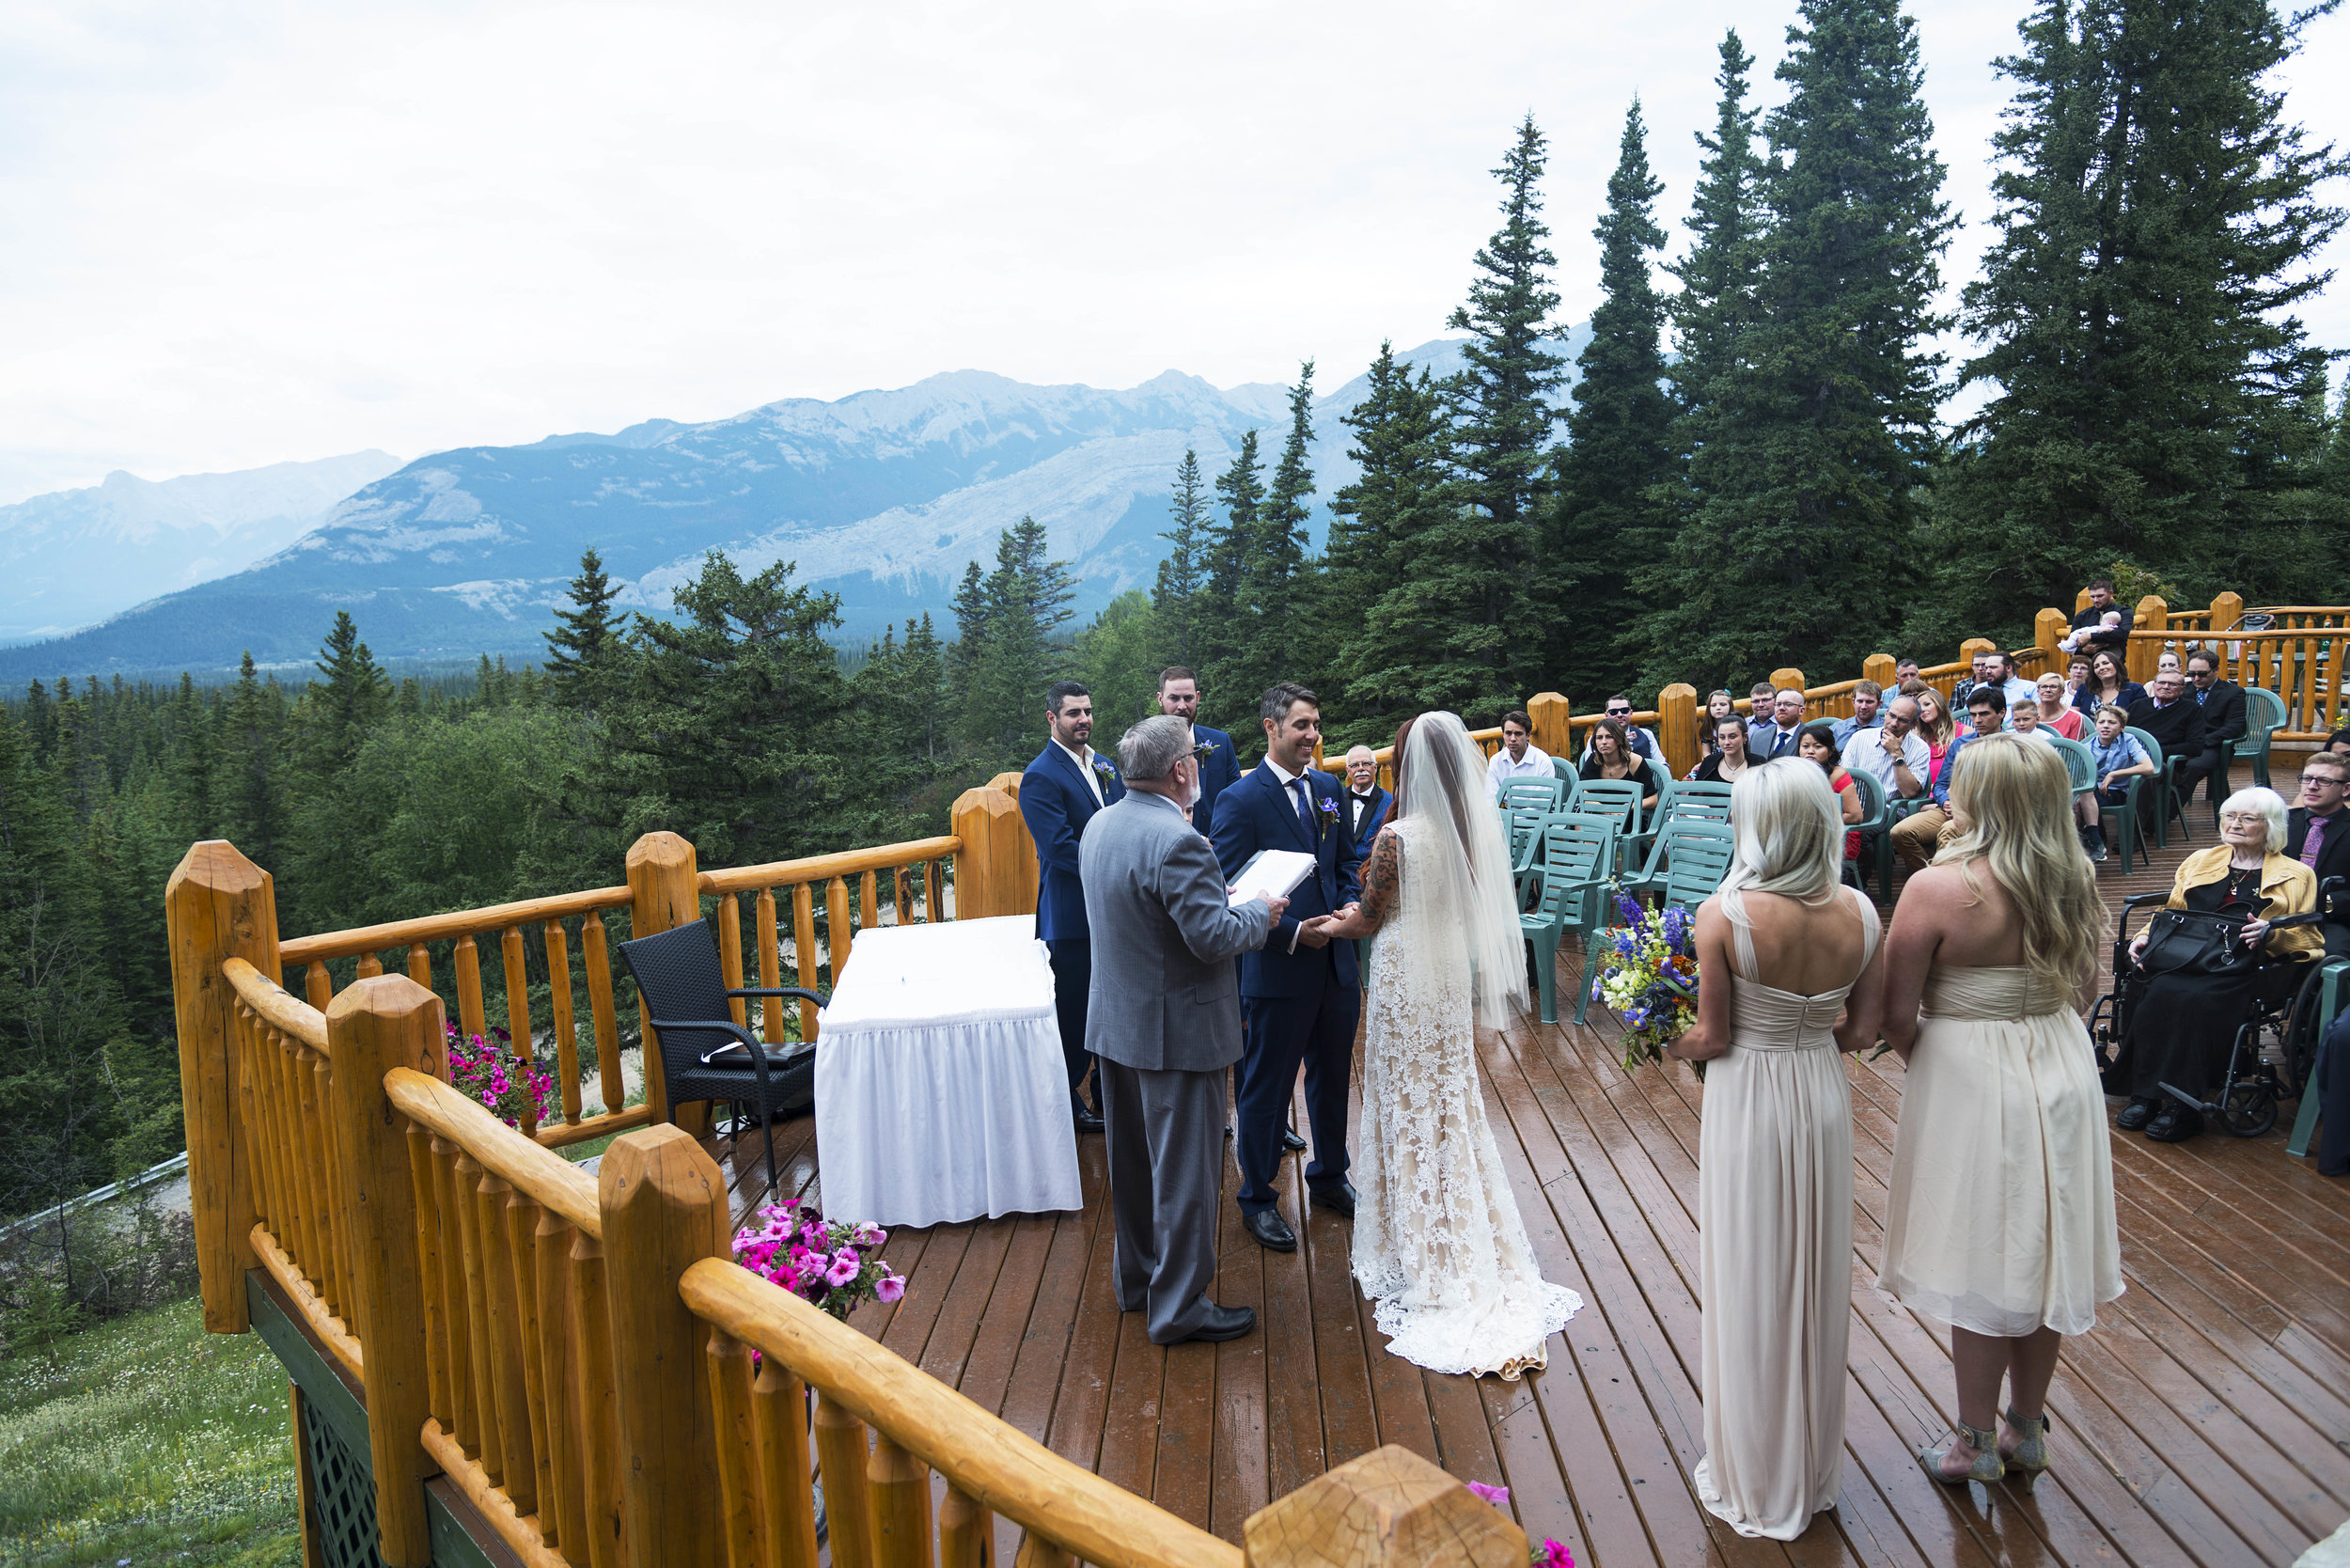 Jasper Weddings - Getting Married in Jasper National Park? We are fully licensed to operate in Jasper, and would love to capture your day in the rockies!